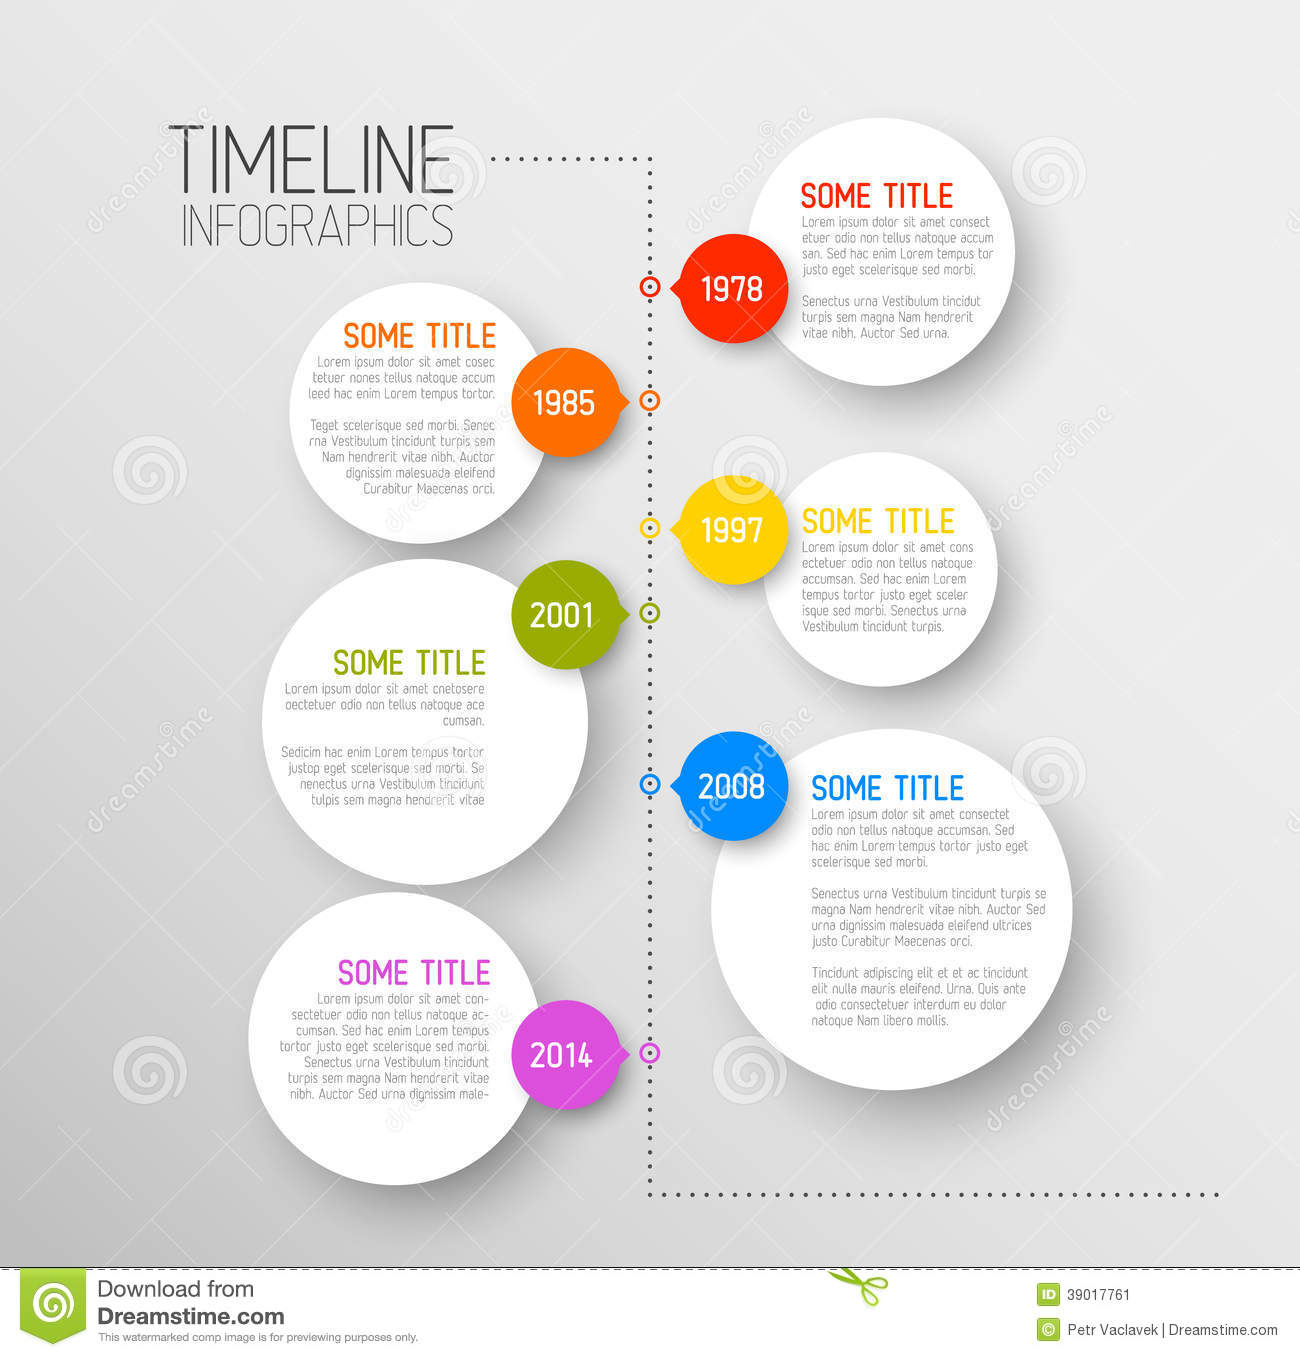 16 Timeline Template Infographic Images